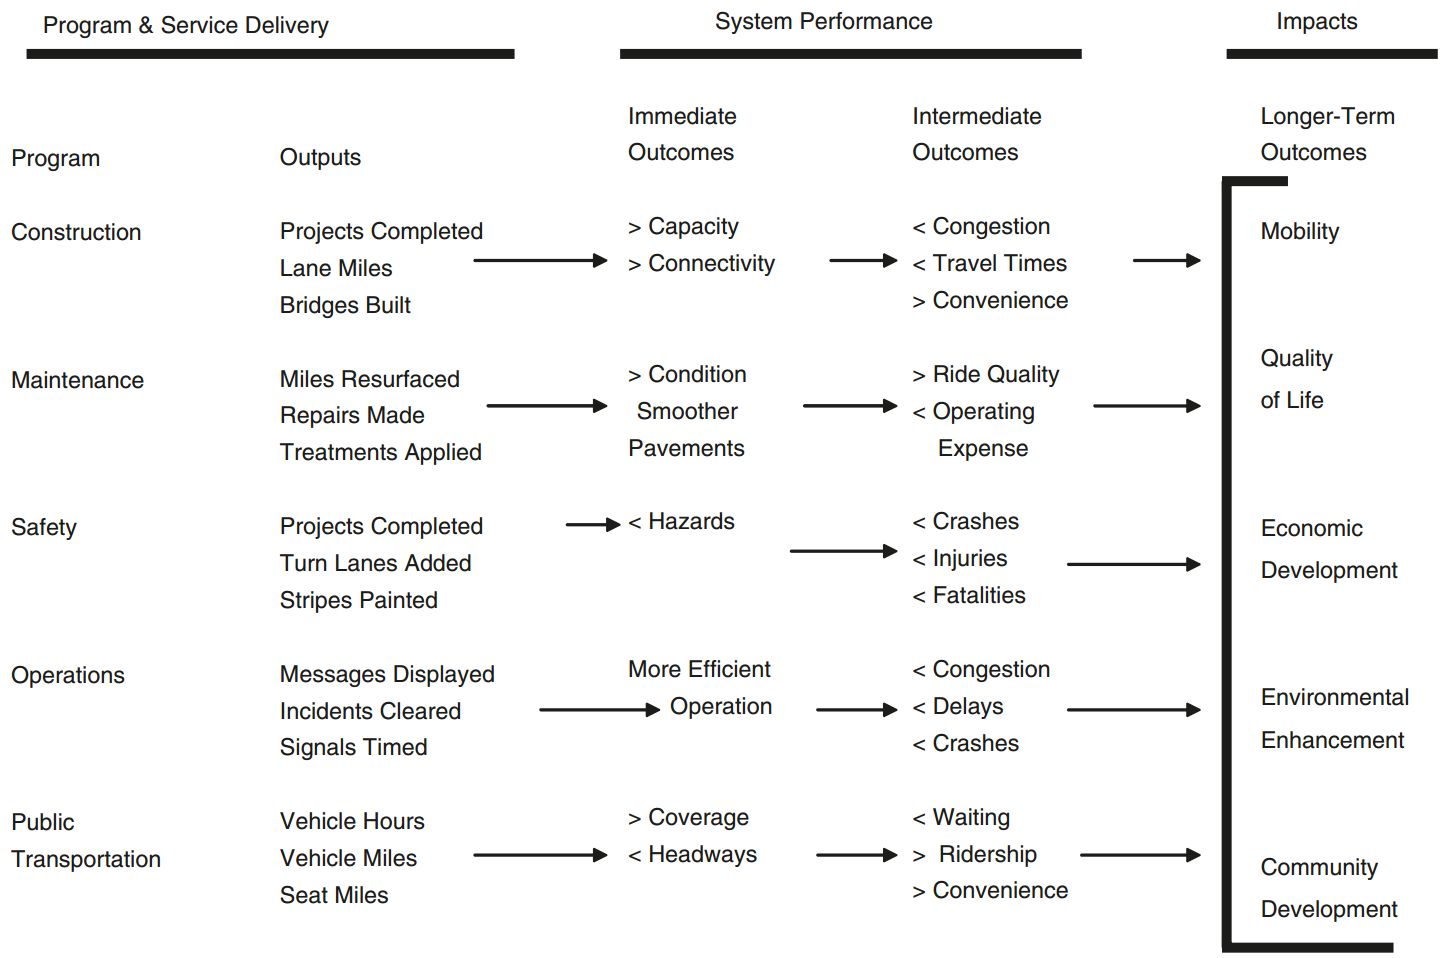 Example logic map showing ways in which program and service delivery leads to system performance, which then has impacts on longer-term outcomes of mobility, quality of life, economic development, environmental enhancement, and community development.